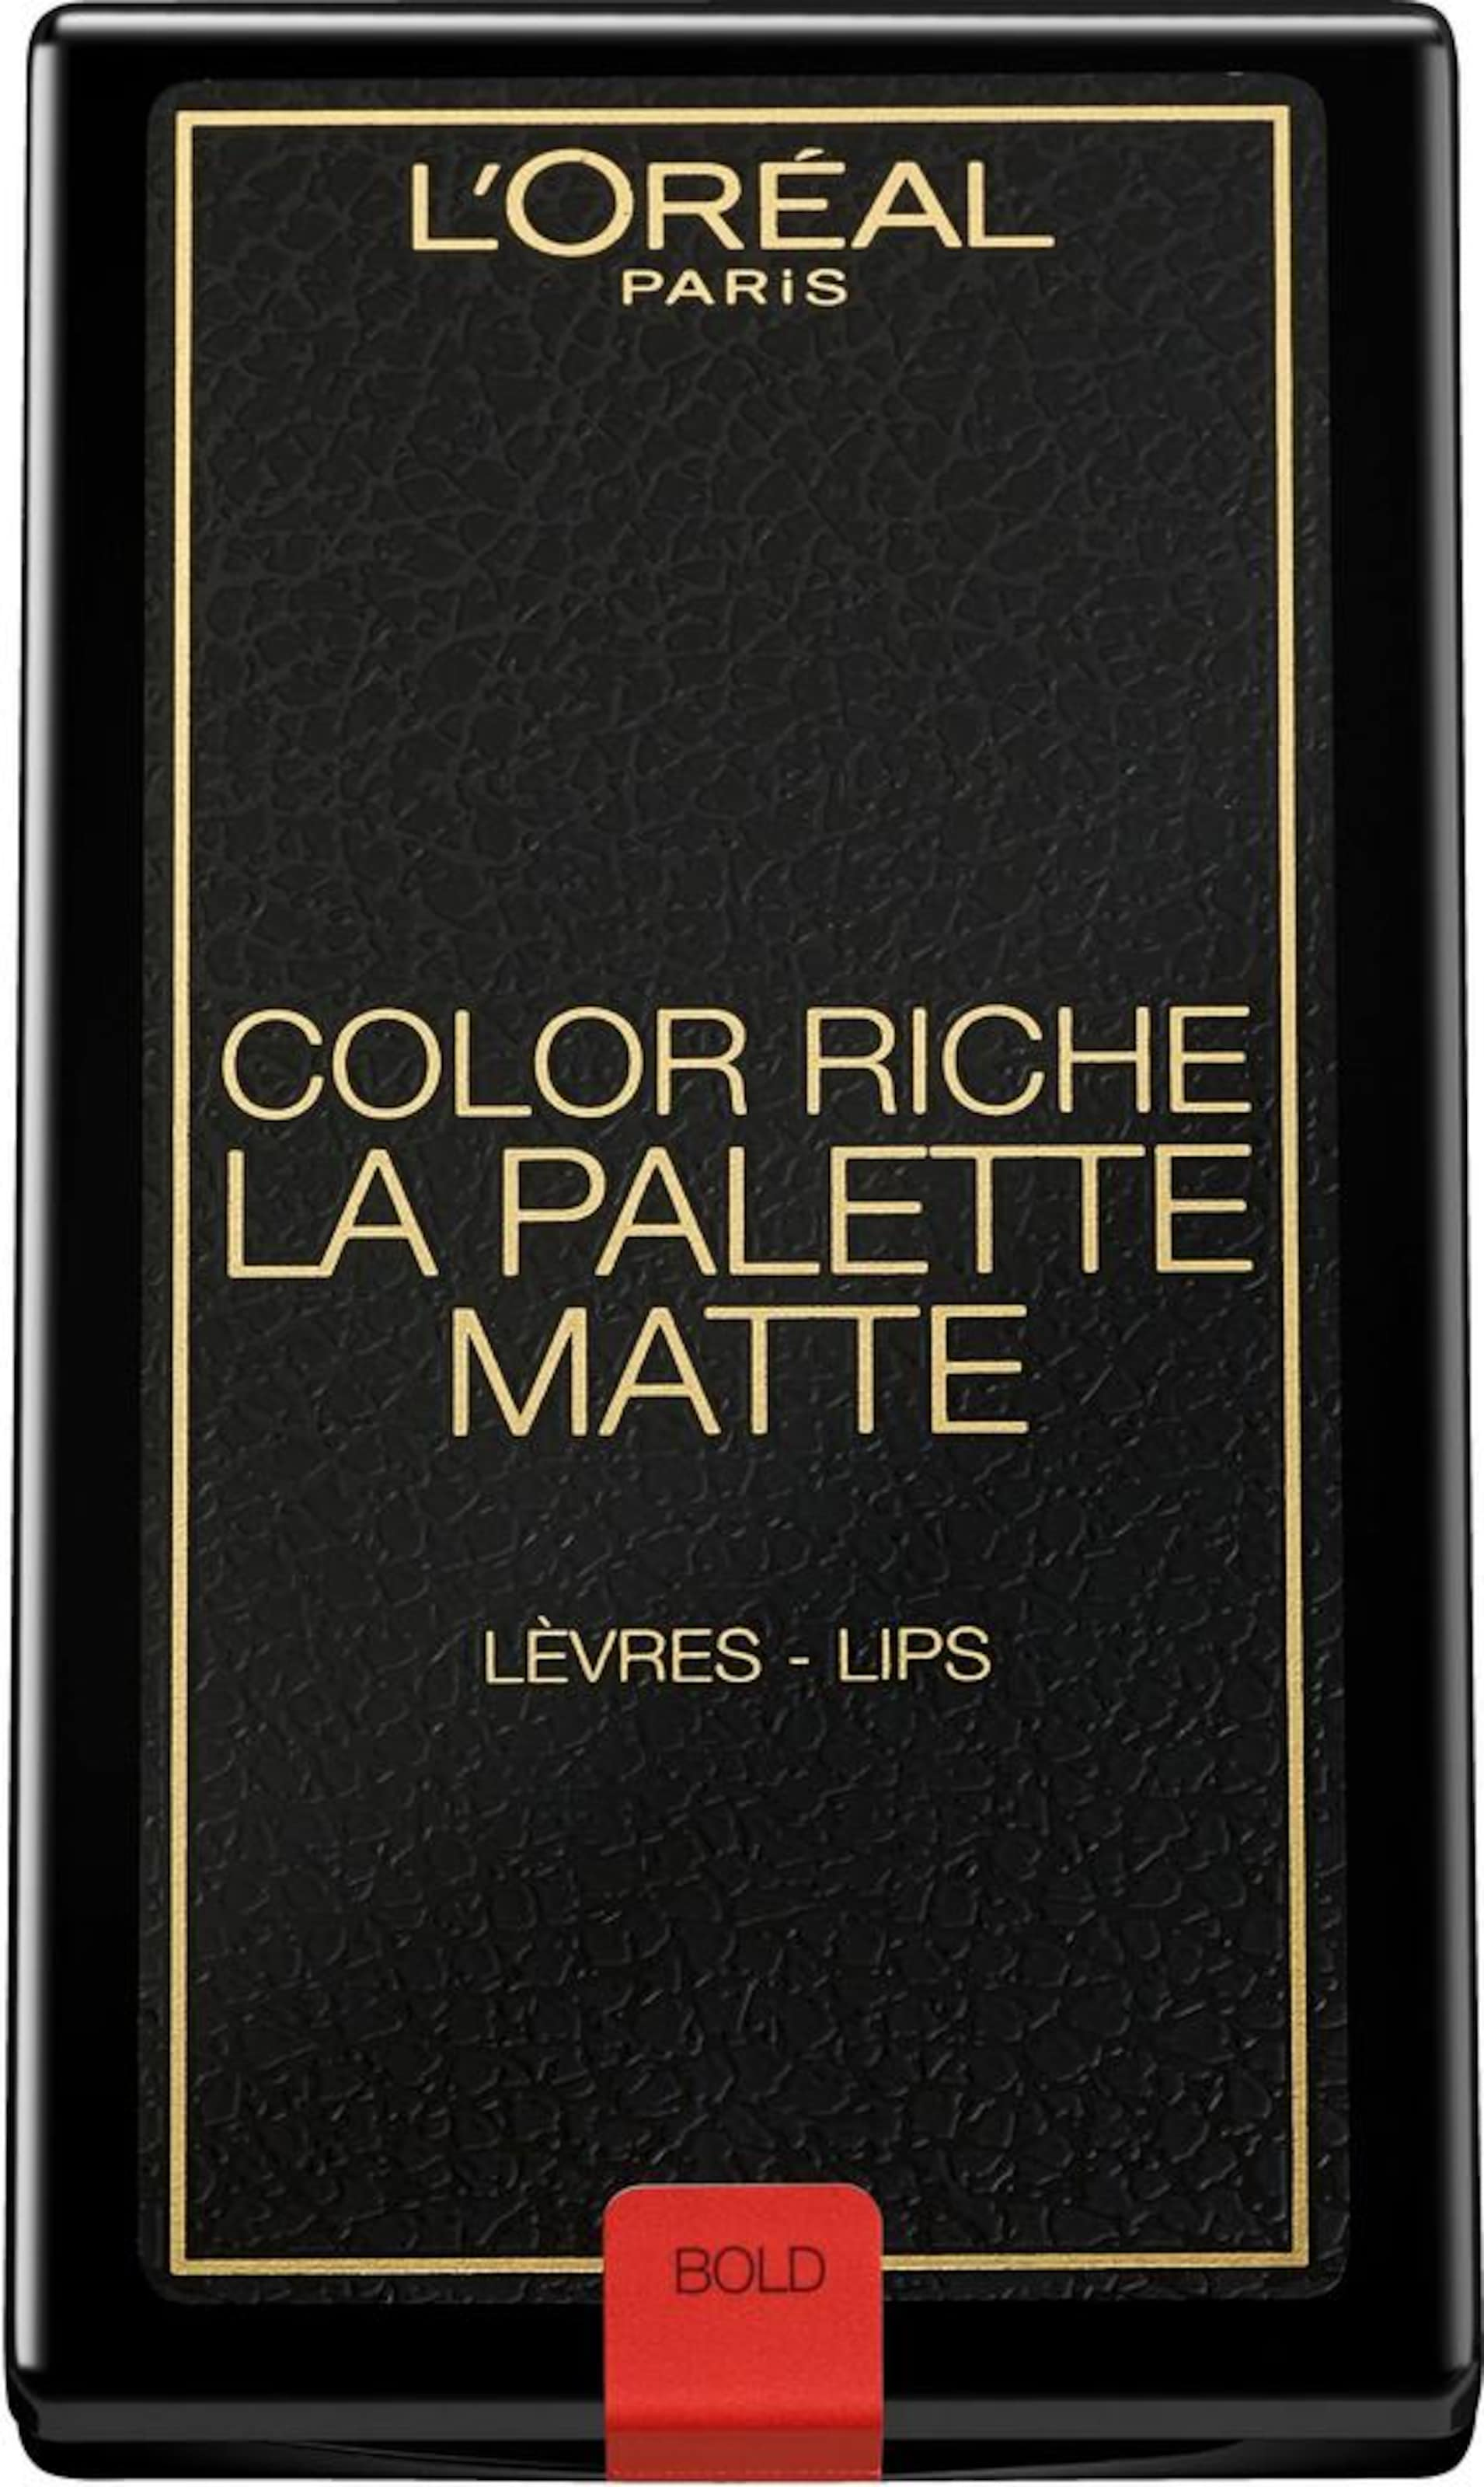 L'Oréal Paris 'Color Riche La Palette Lip Matte Addiction', Lippenstift